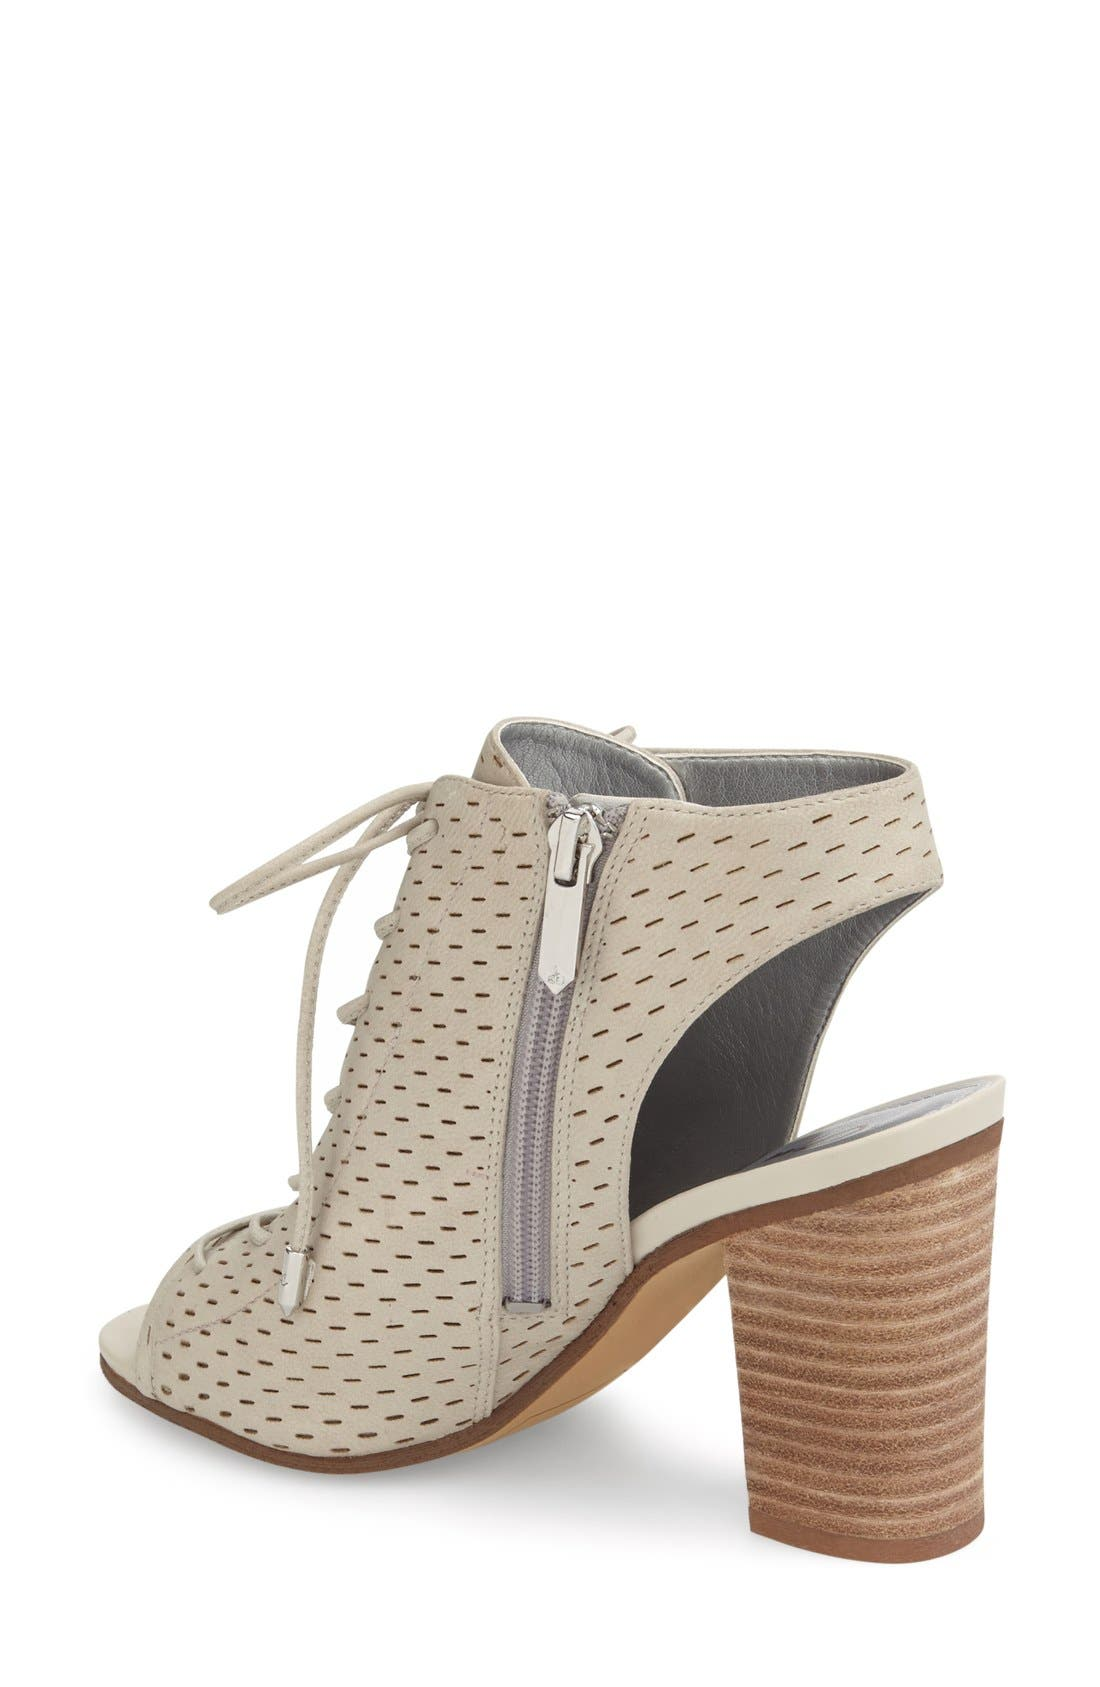 Alternate Image 2  - Sam Edelman 'Ennette' Perforated Lace Up Bootie (Women)